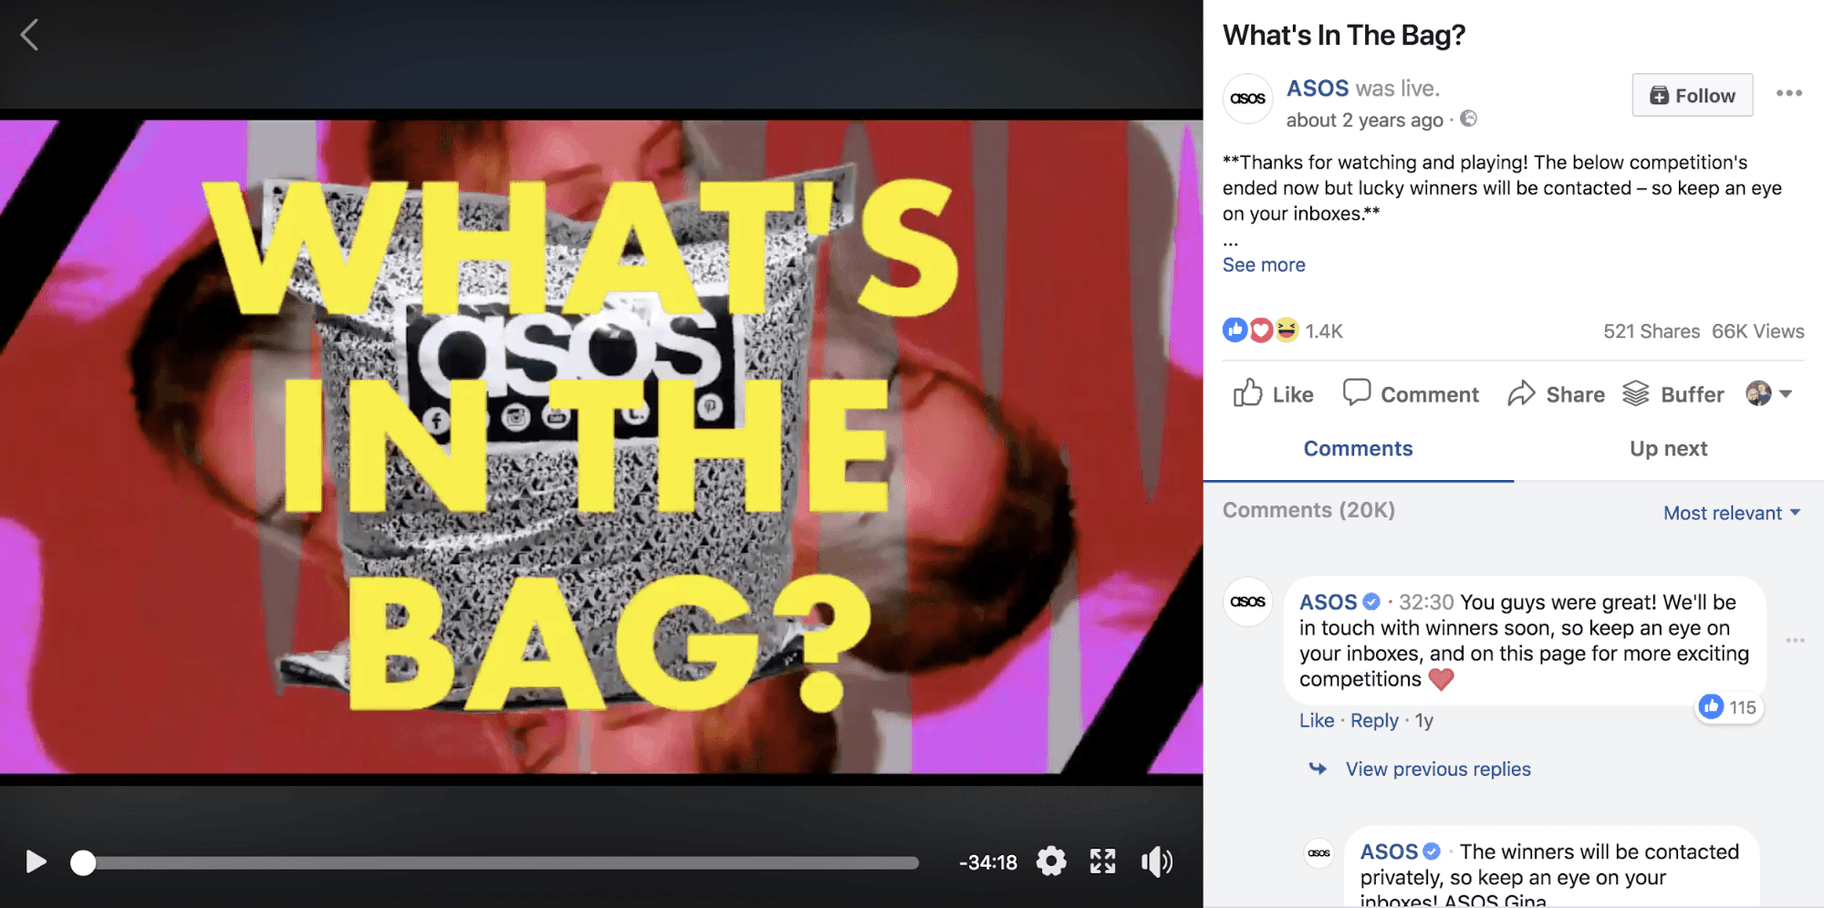 Asos Facebook Live Video